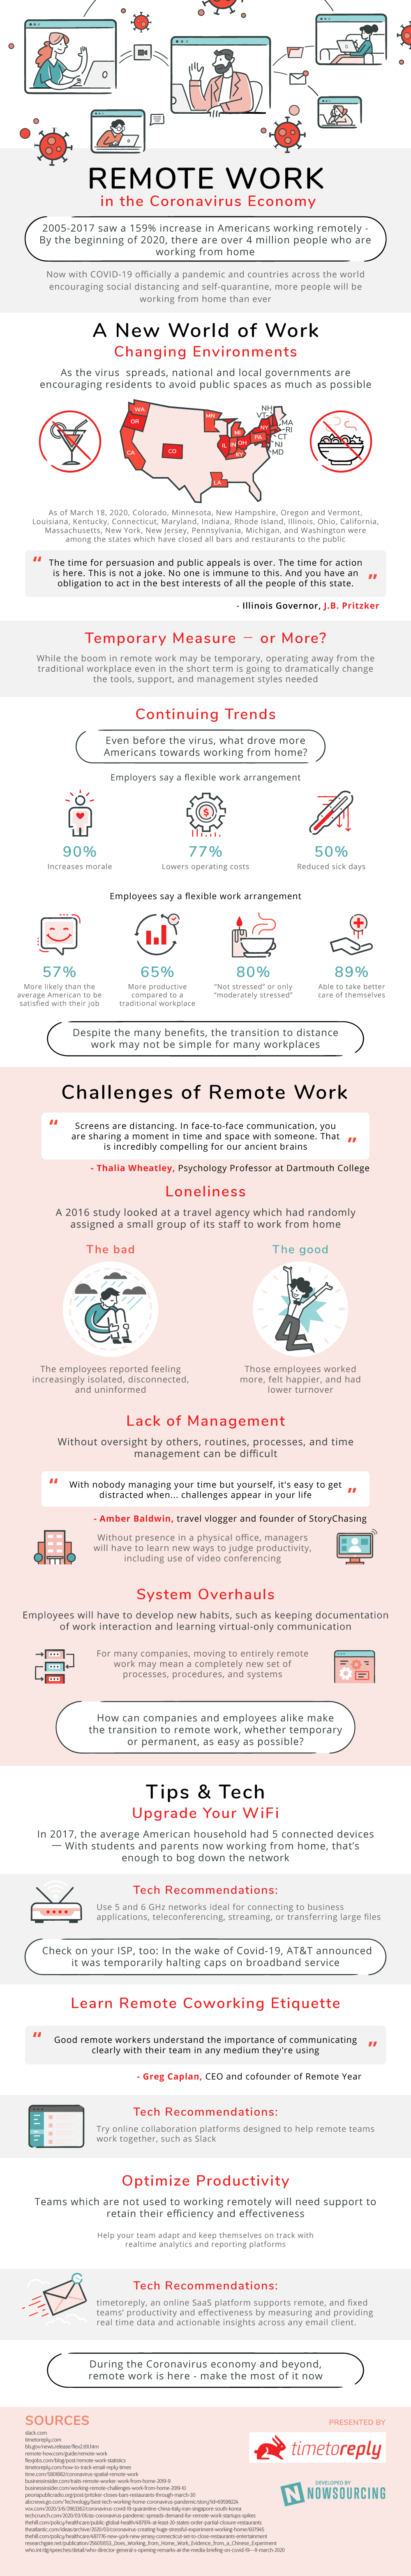 Working Remotely Infographic